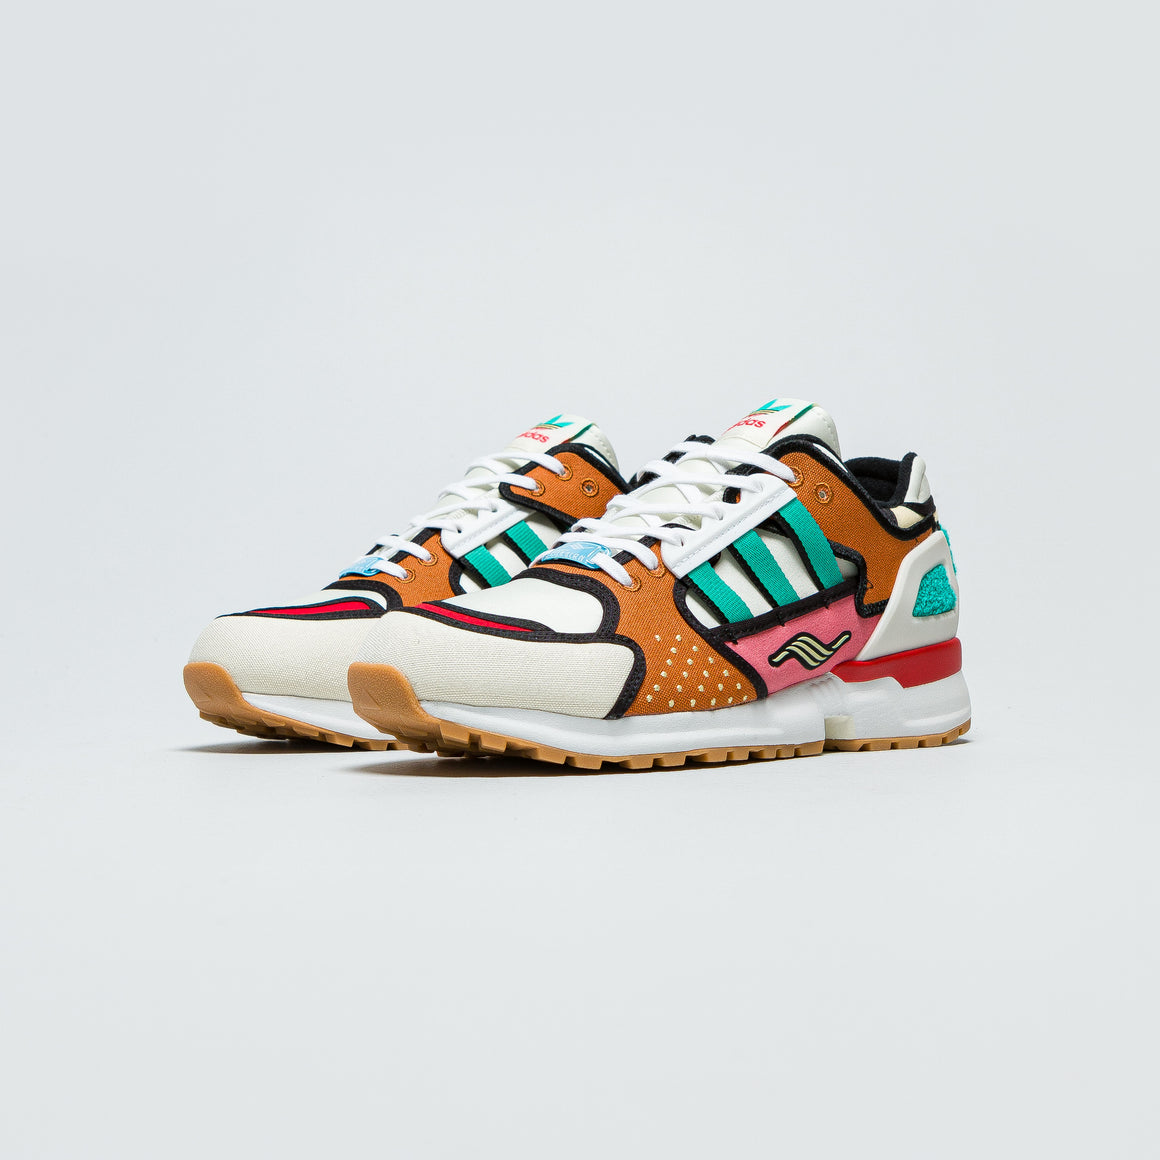 adidas - ZX 10,000 x Krusty Burger - Cream White/Supplier Colour - Up There